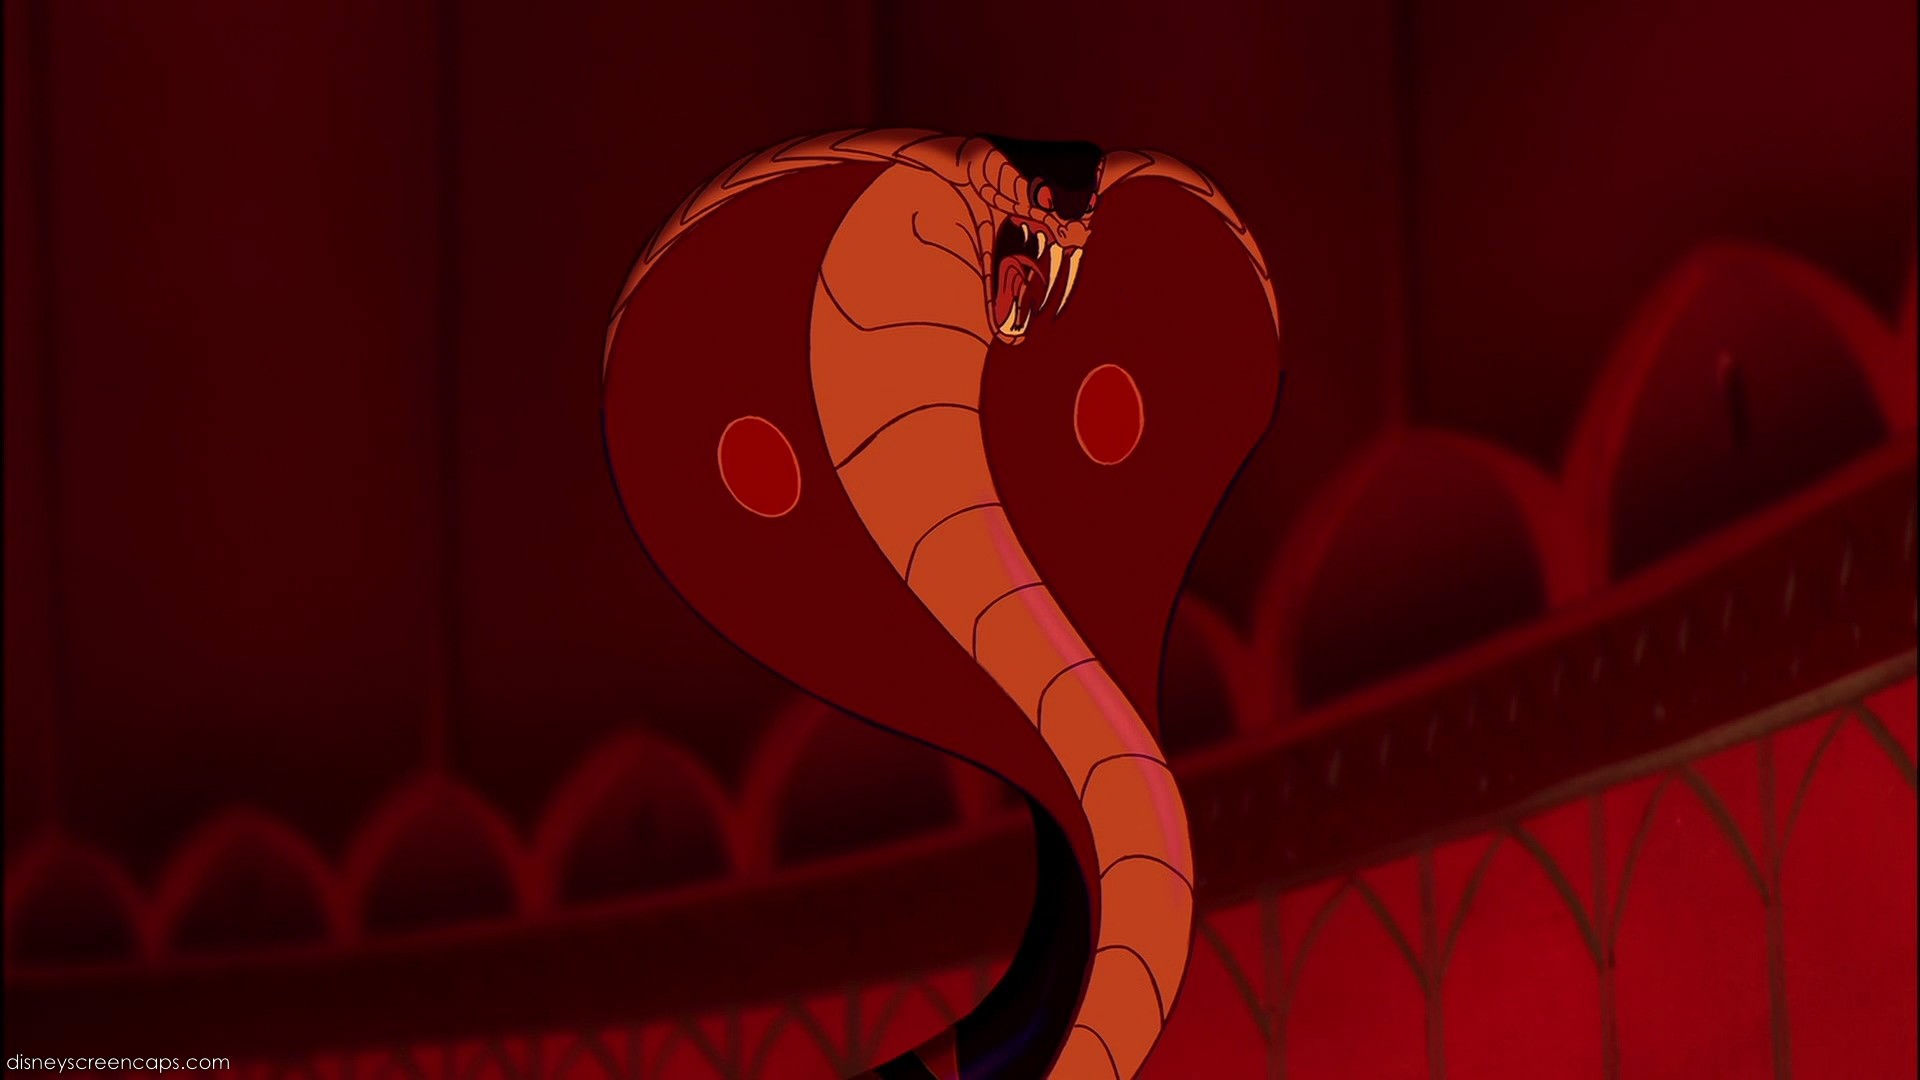 Jafar Disney Fan Fiction Wiki Fandom Powered By Wikia Snake Diagram Related Keywords Suggestions Long Tail Powers And Abilities